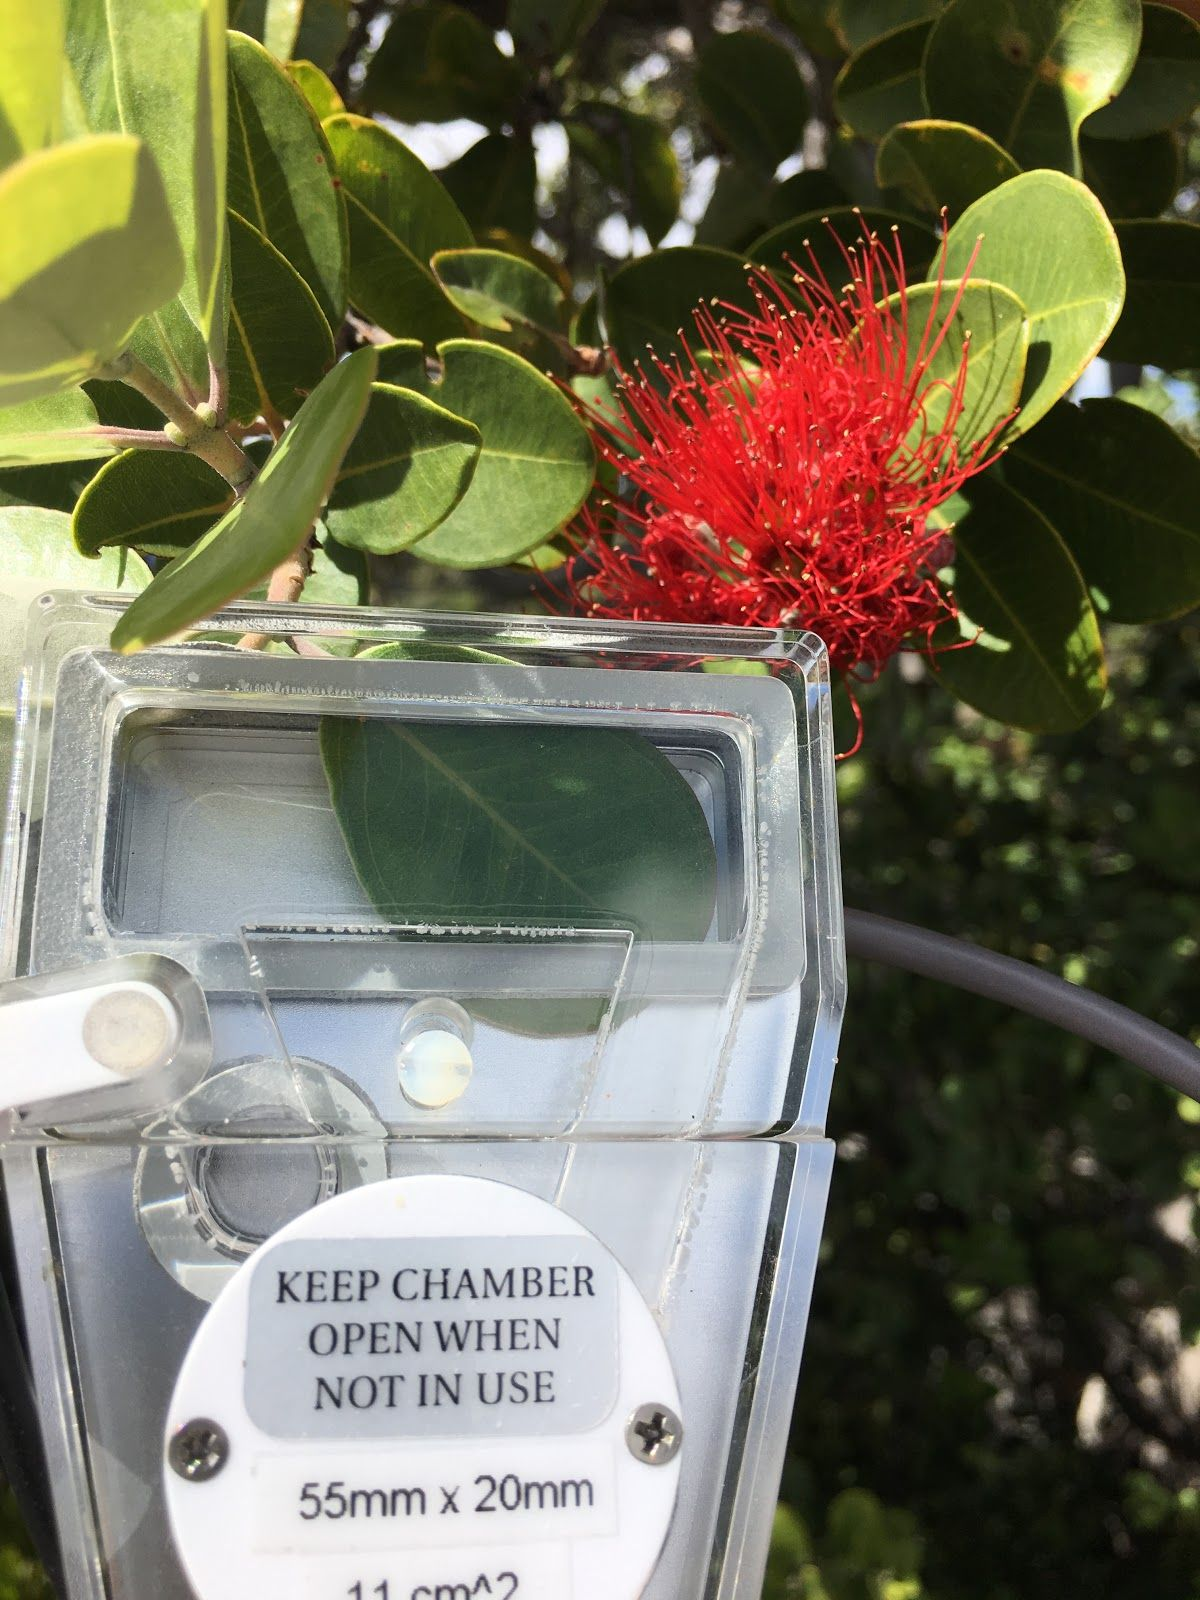 The Ryers use one of our CID leaf chambers in order to measure the rate of photosynthesis in a single leaf with the CI-340 Handheld Photosynthesis System.